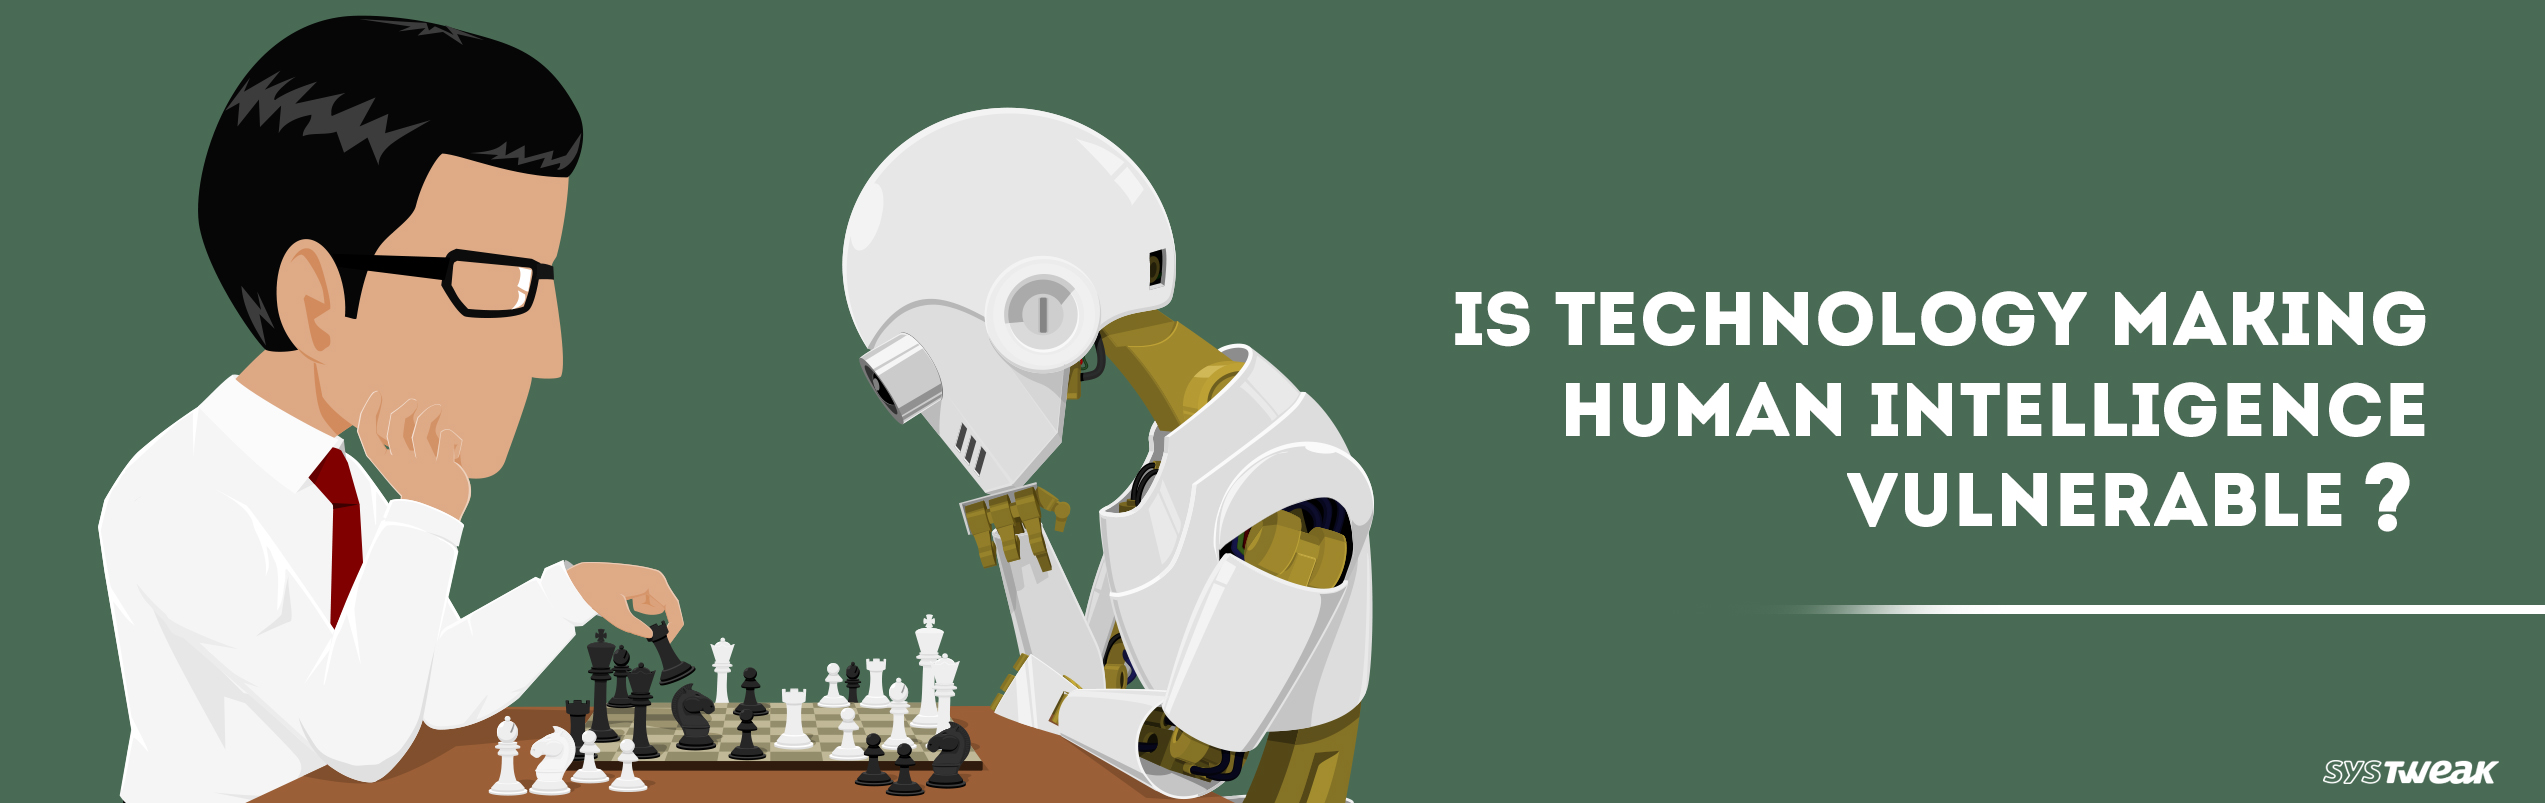 Has Technology Become A Threat To Human Intelligence?